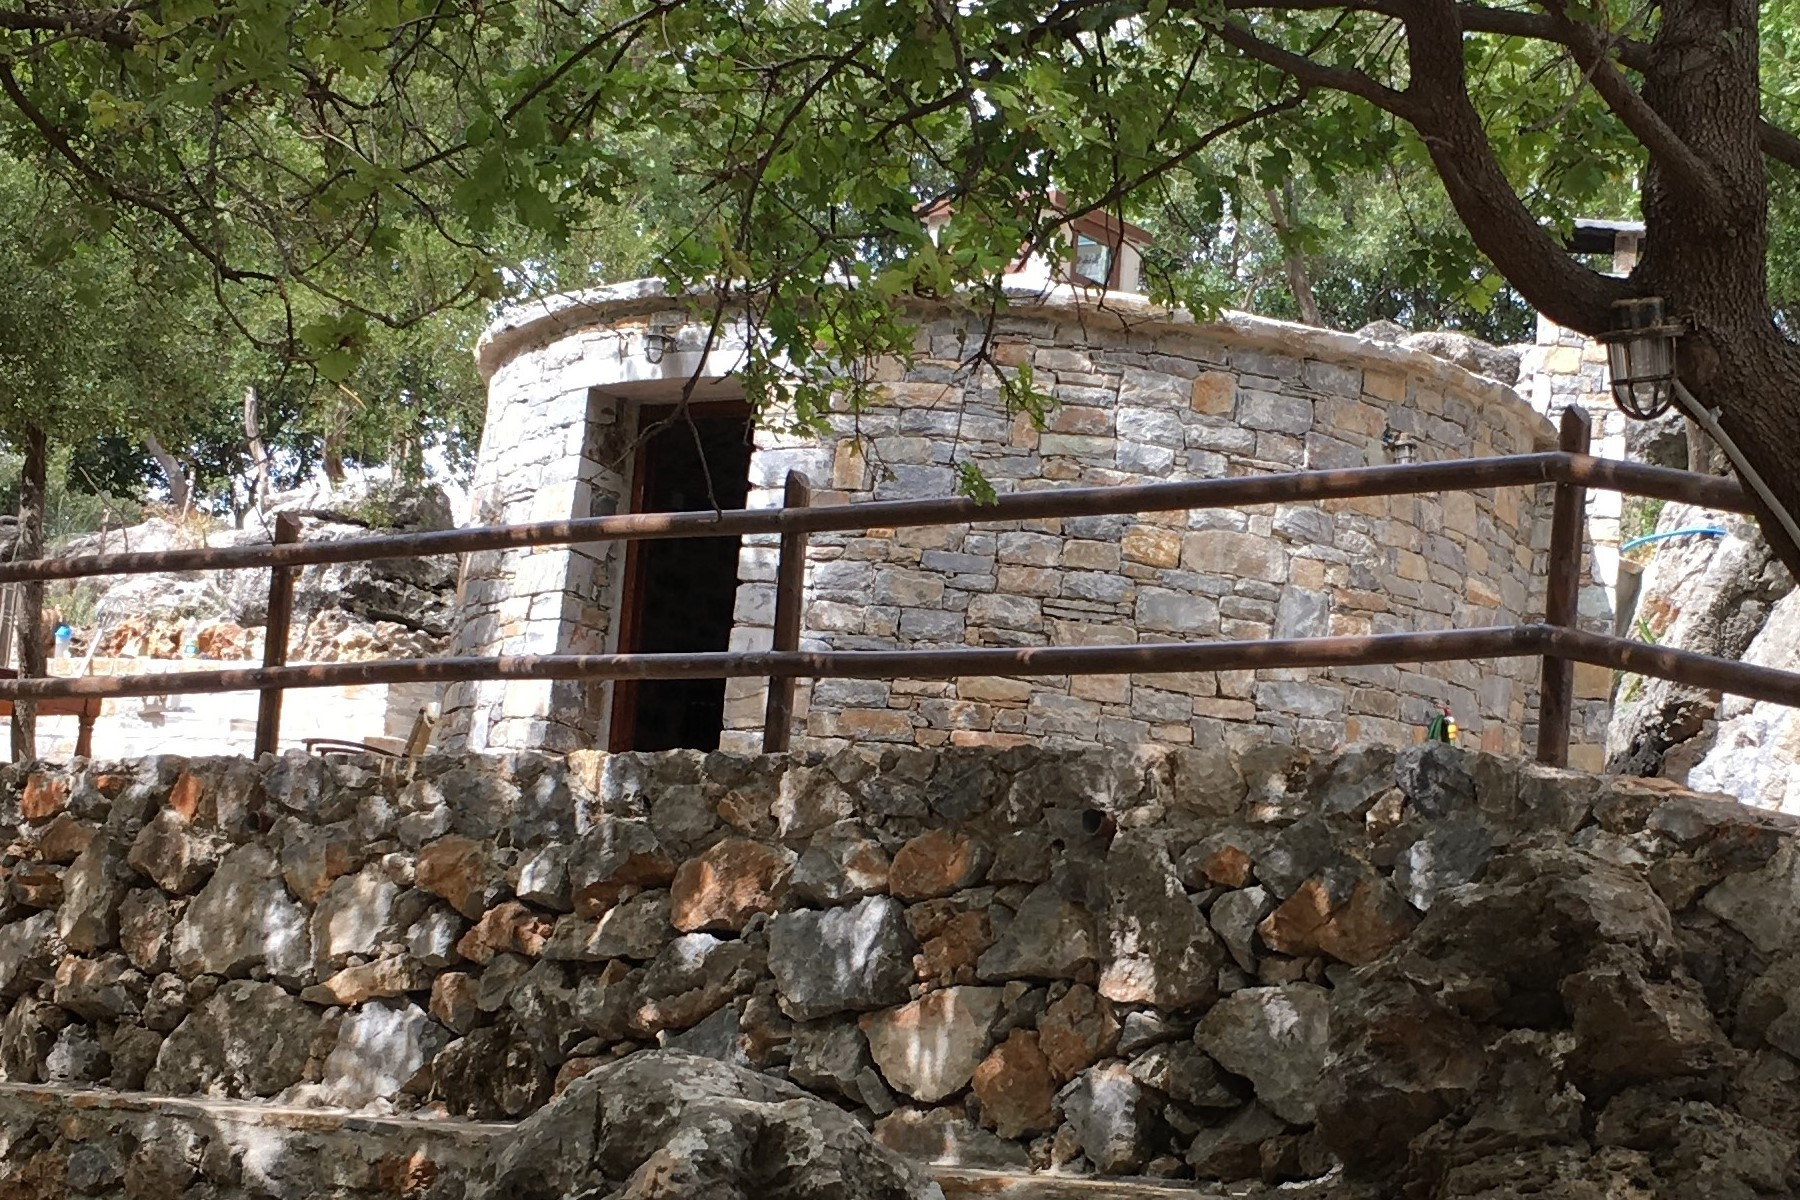 Rethymnon Tour 1. Explore a Shephard's Hut and Cheese Making Process